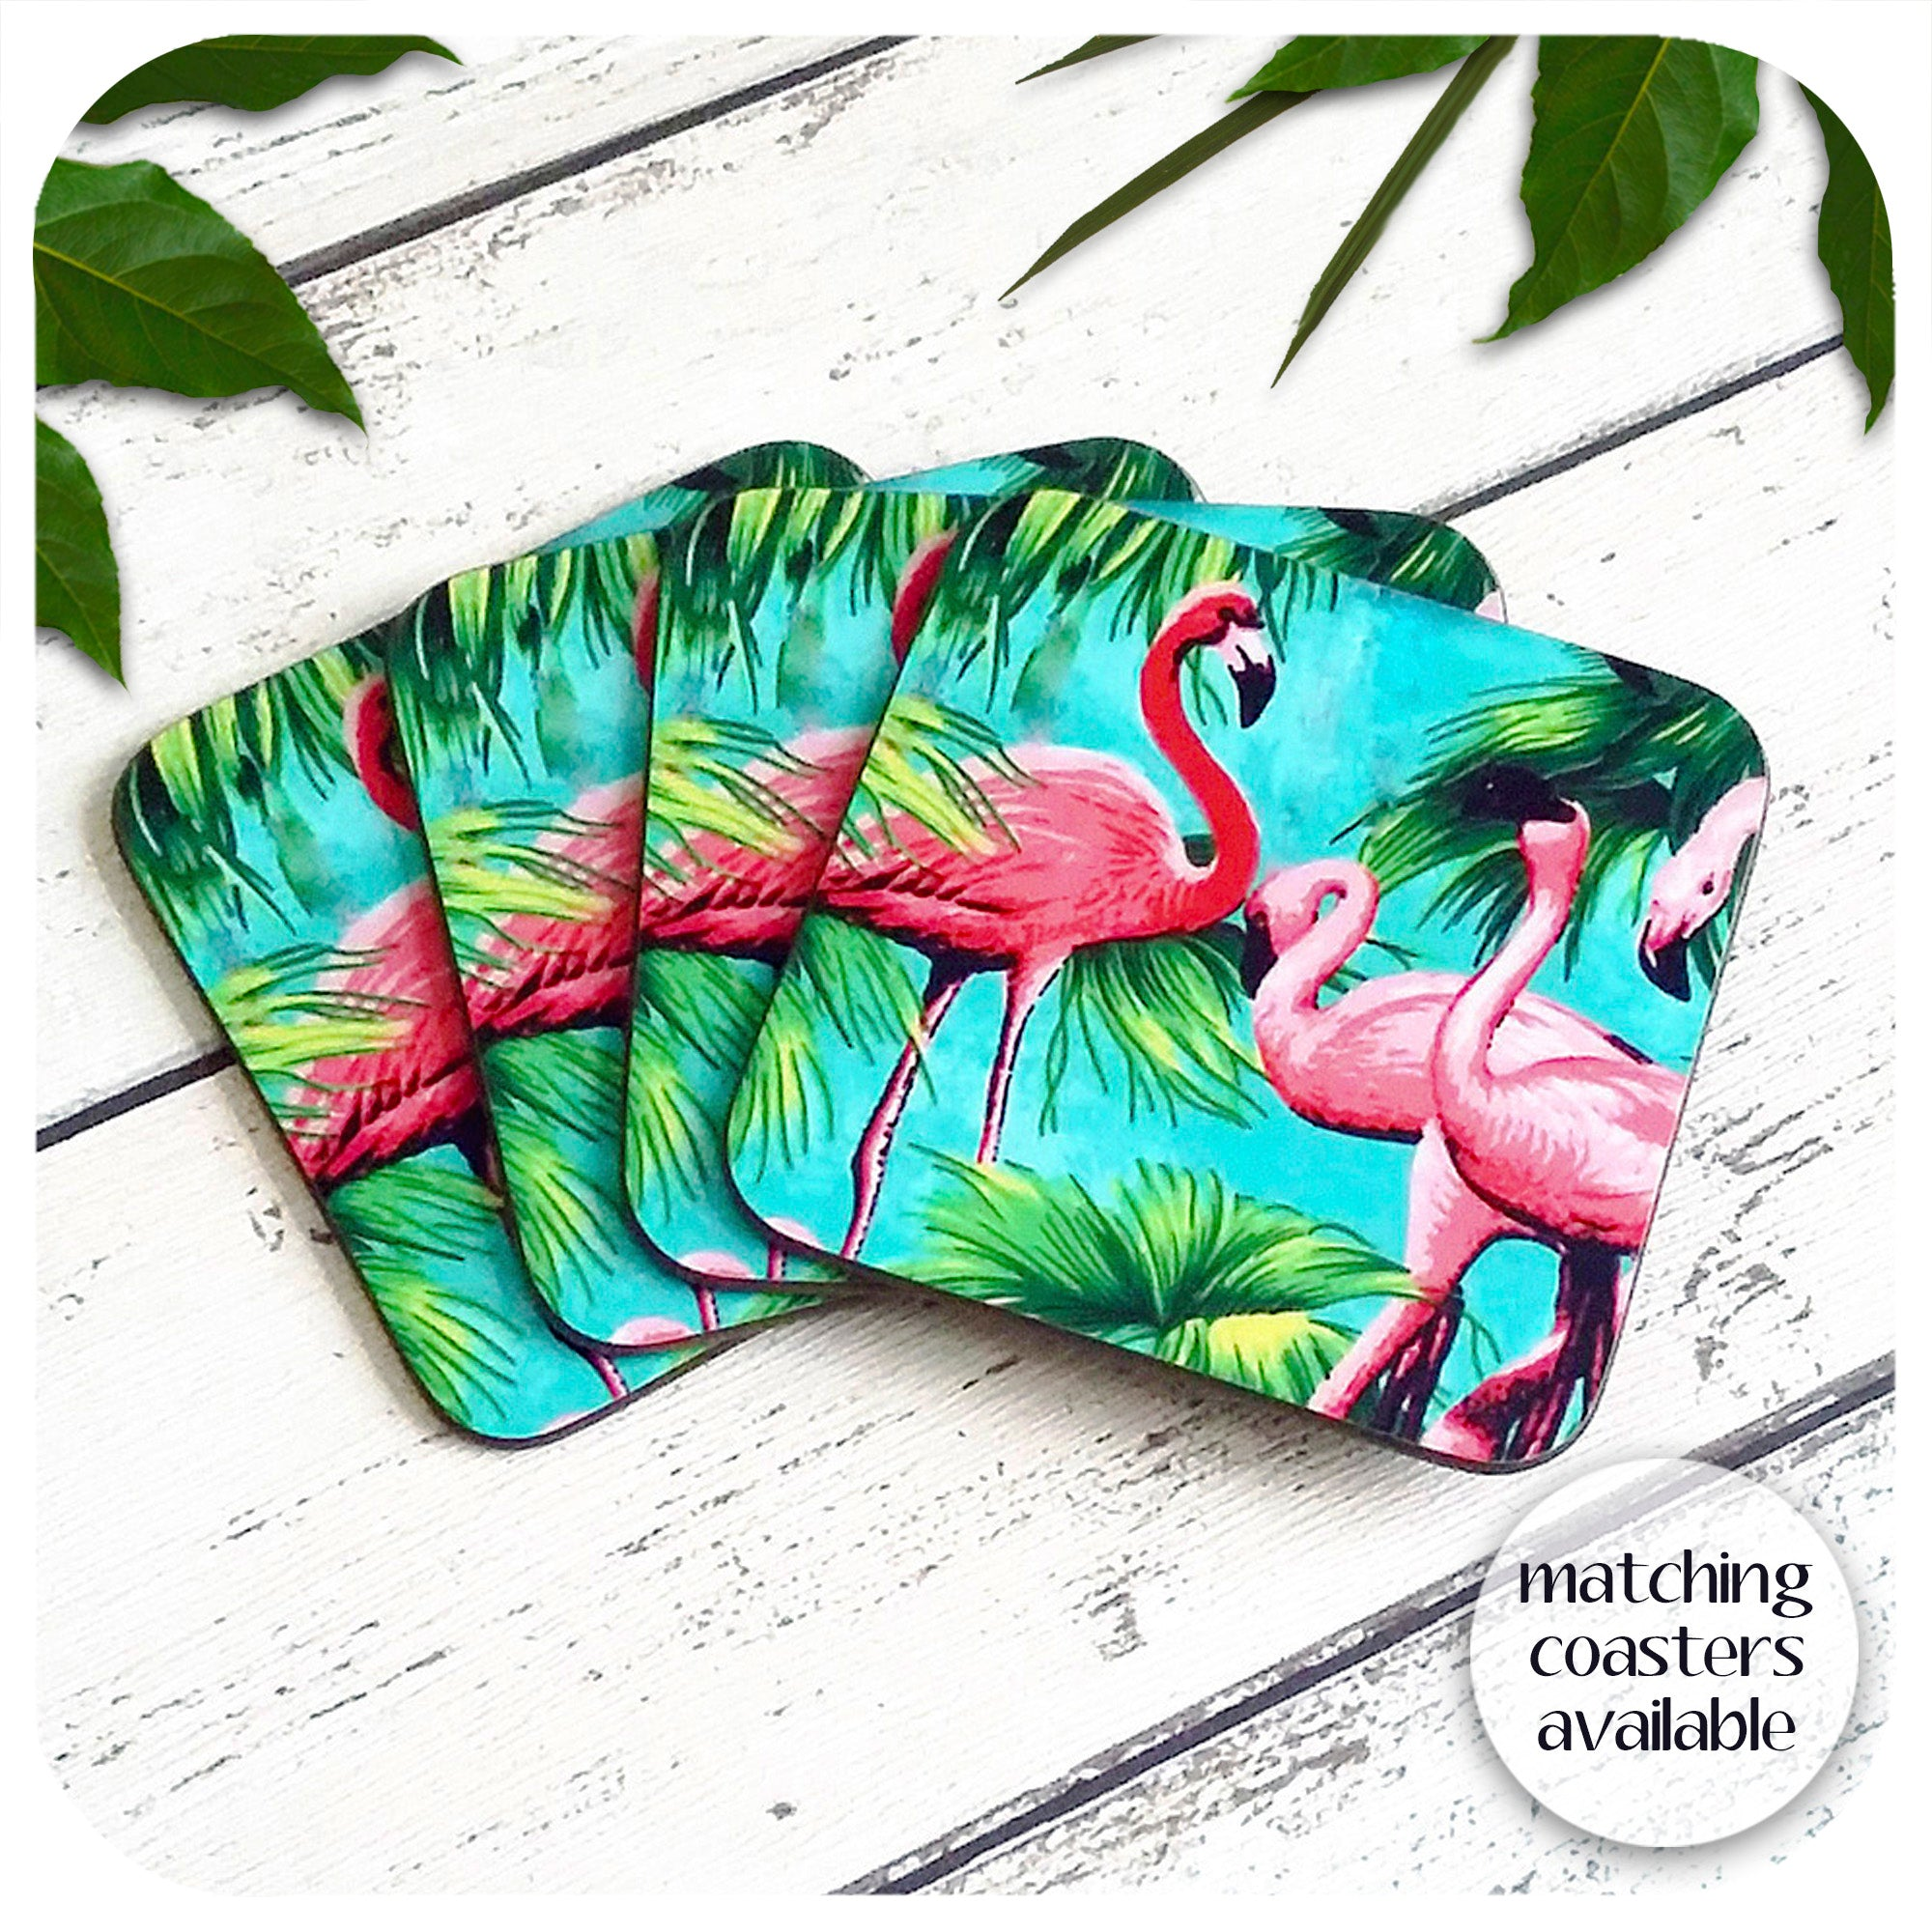 Matching Flamingo Coasters available | The Inkabilly Emporium